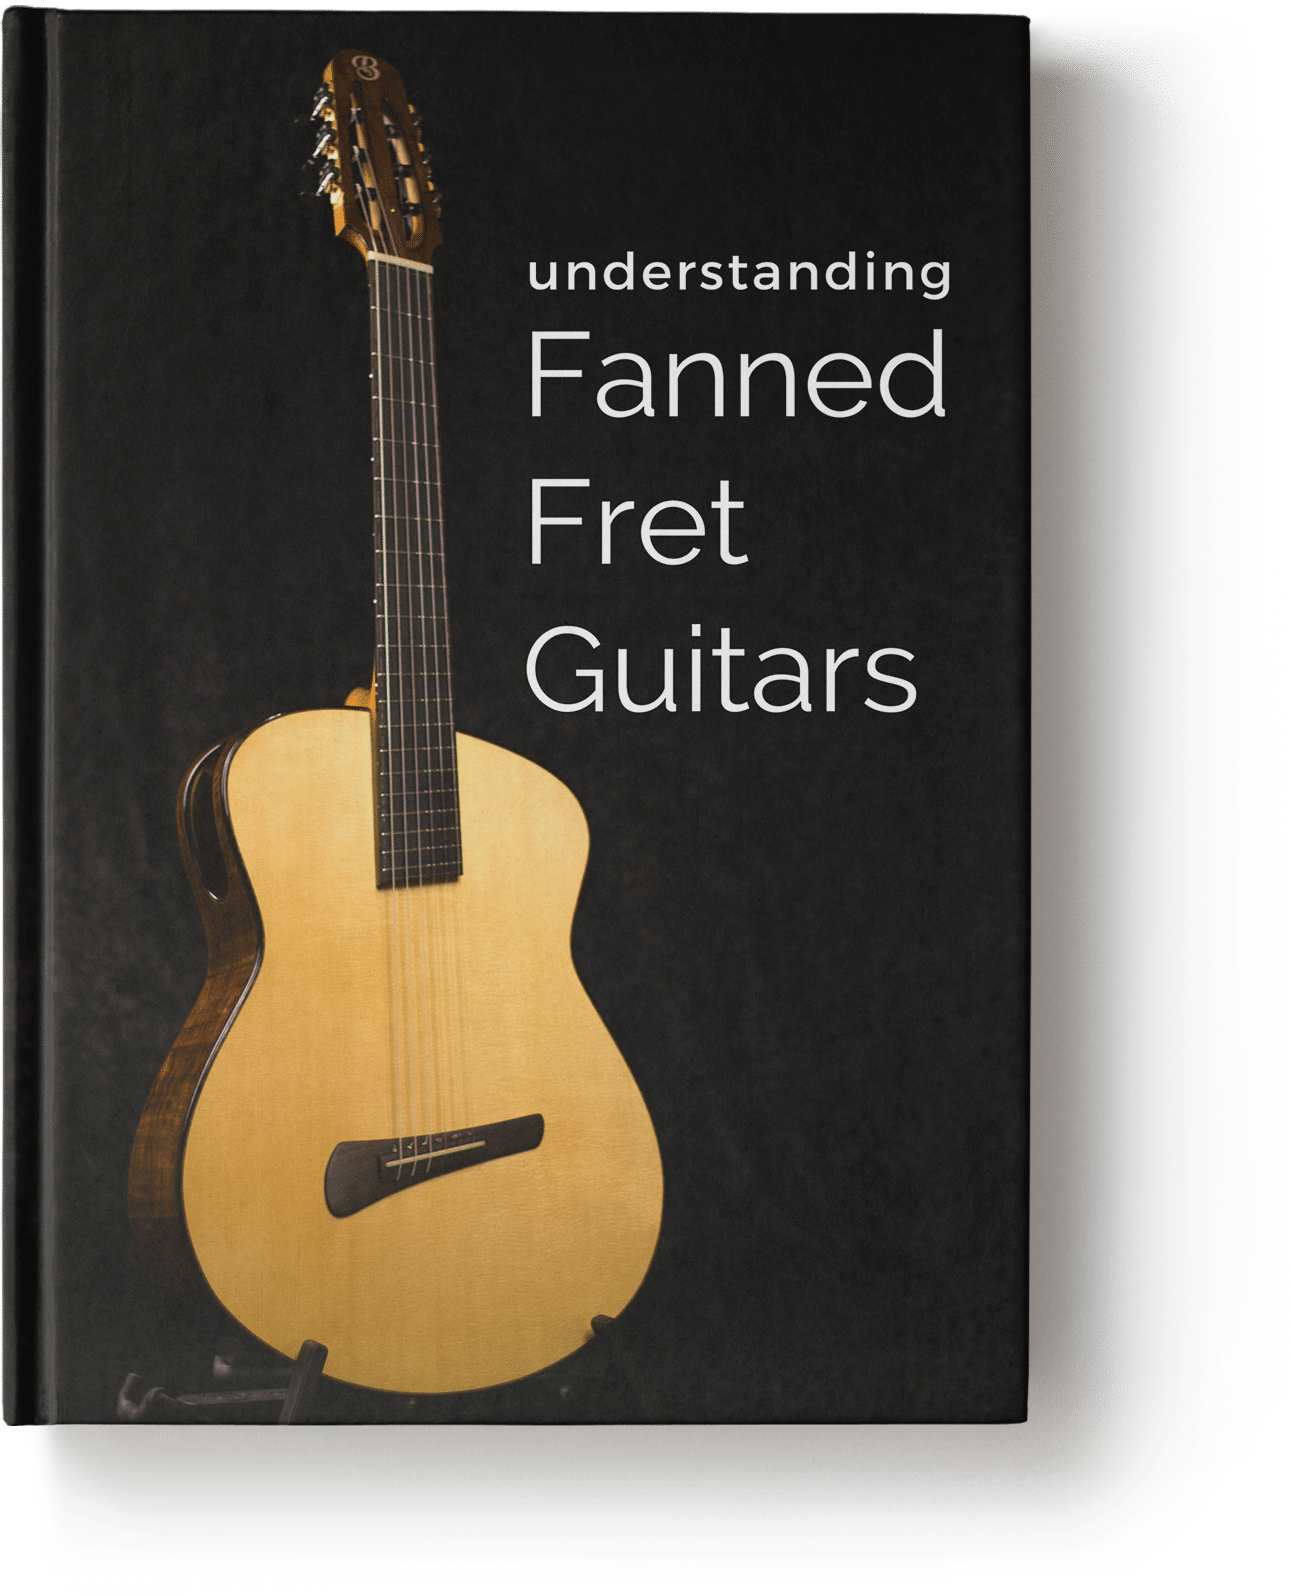 Understanding Fanned Fret Guitars - Book Cover